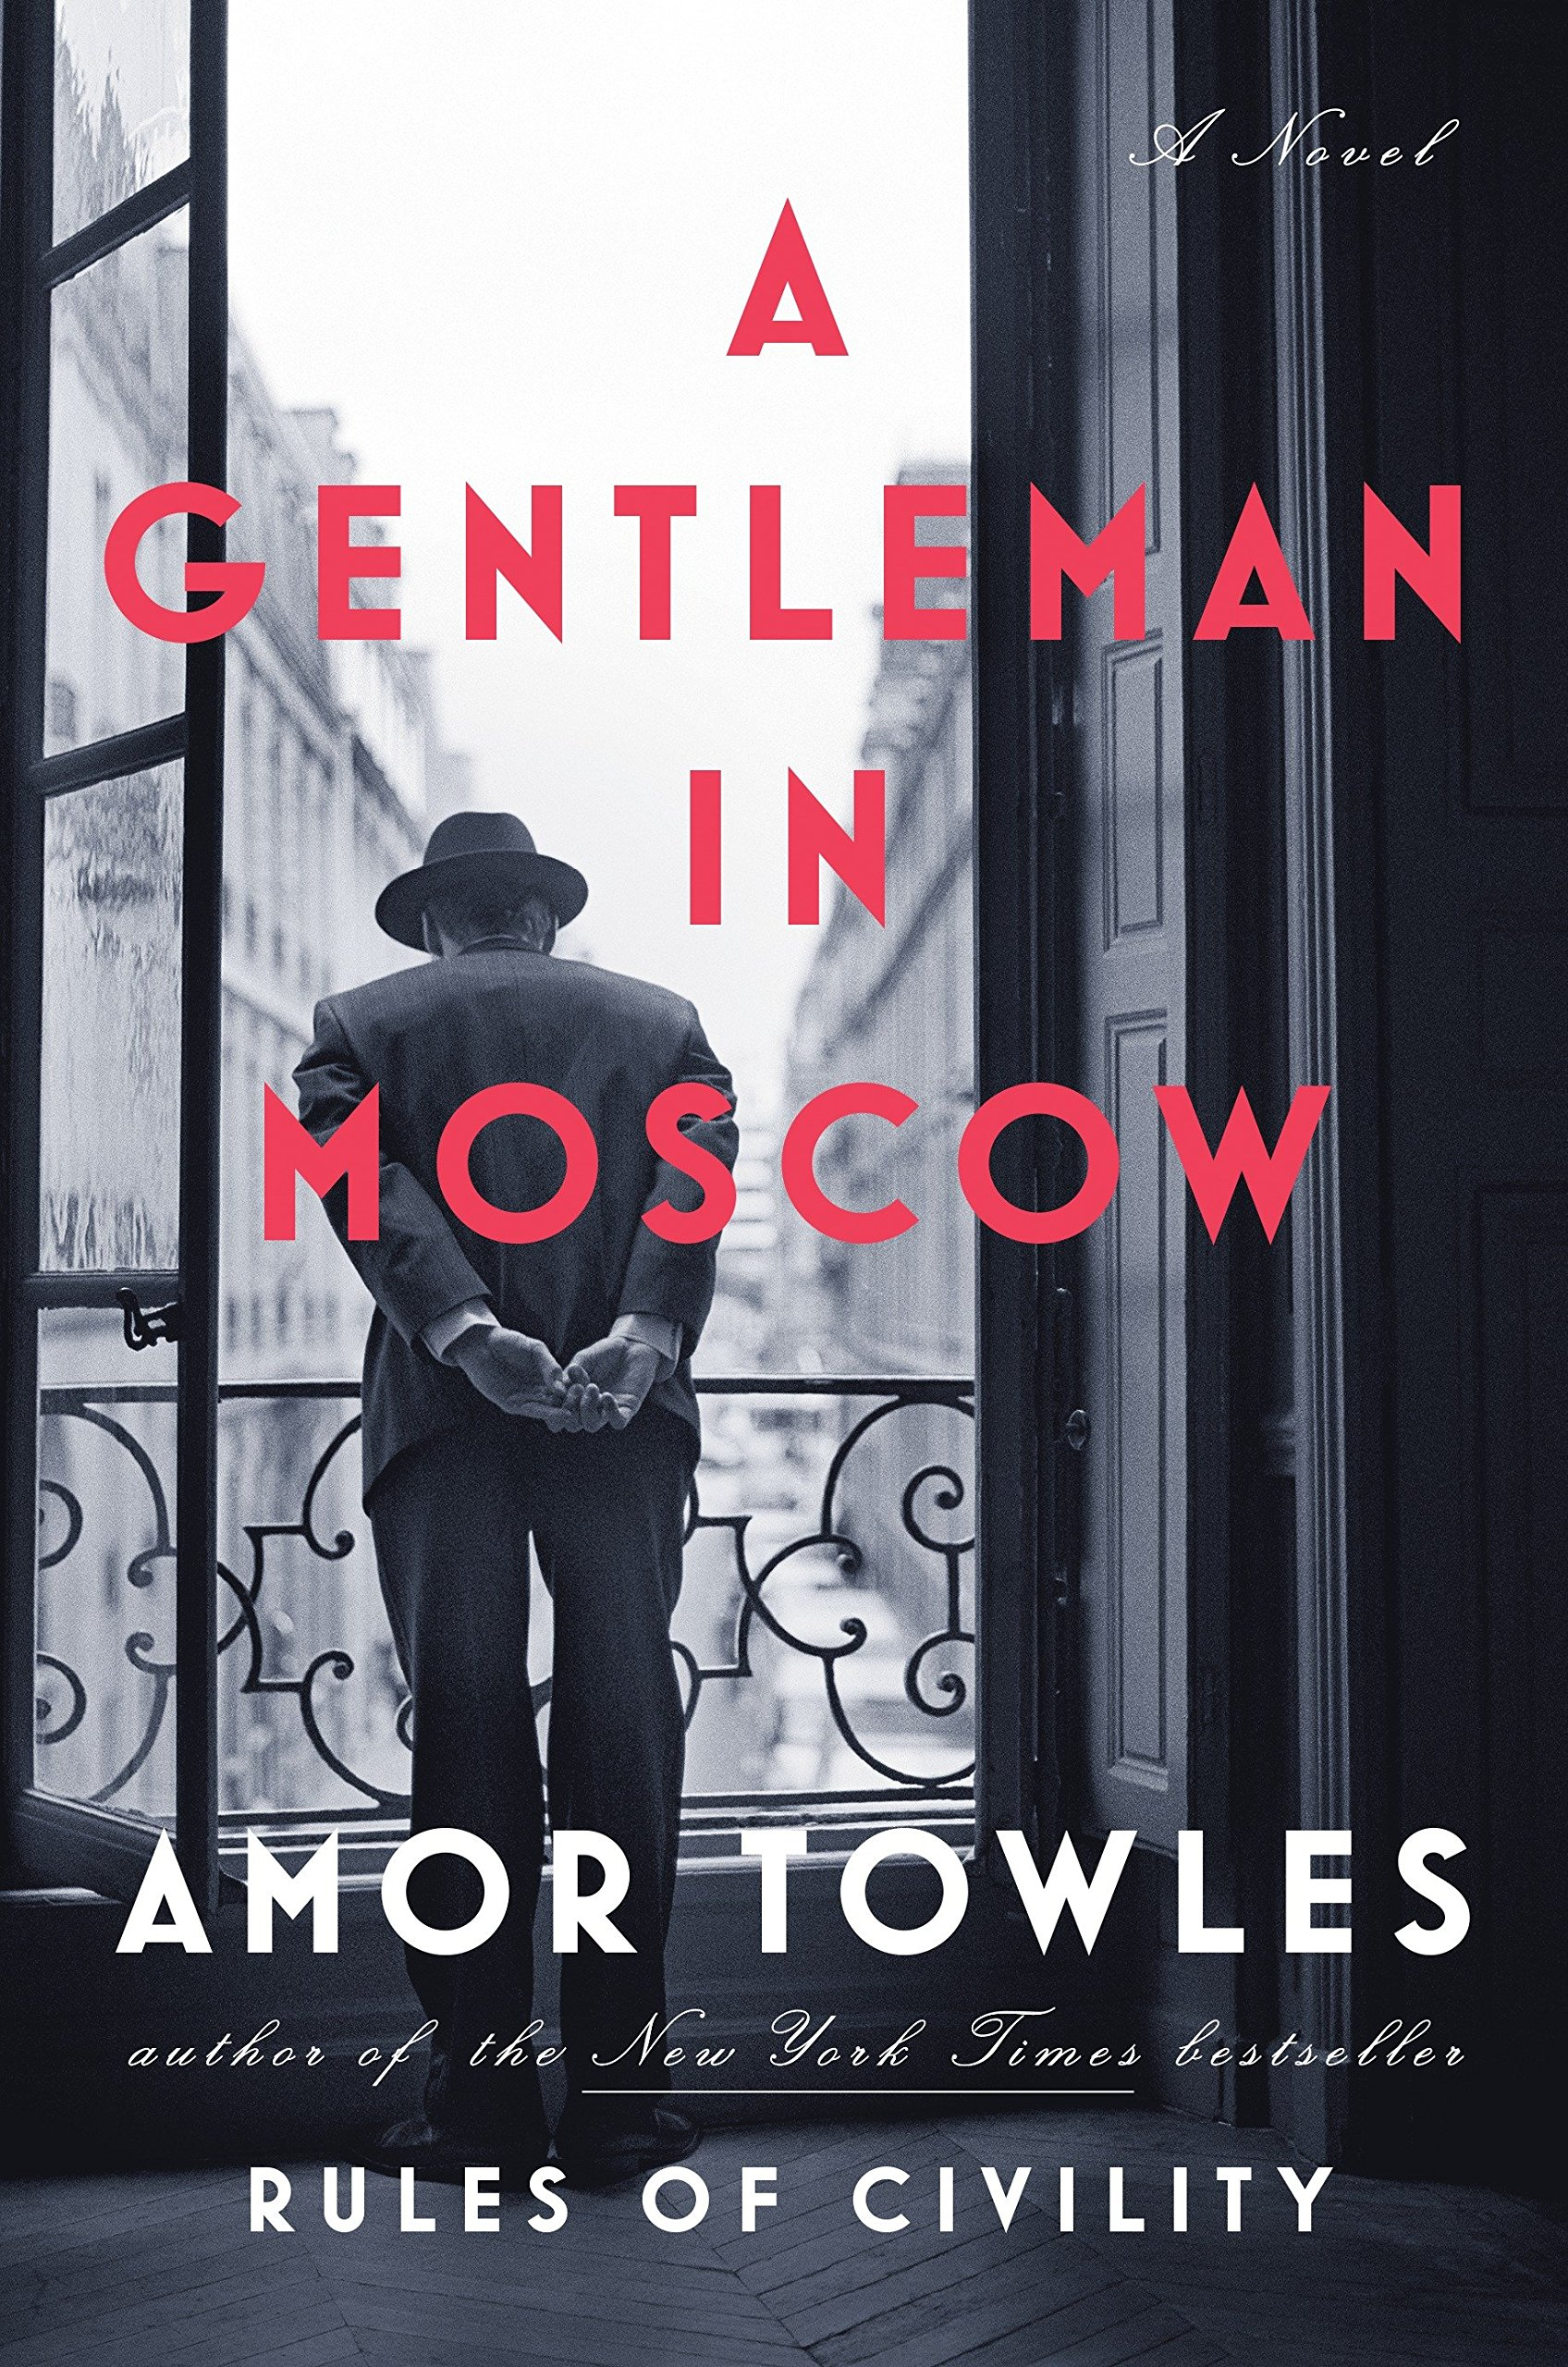 book cover for a gentleman in moscow - black and white photo of a man in a hat looking down from a balcony.